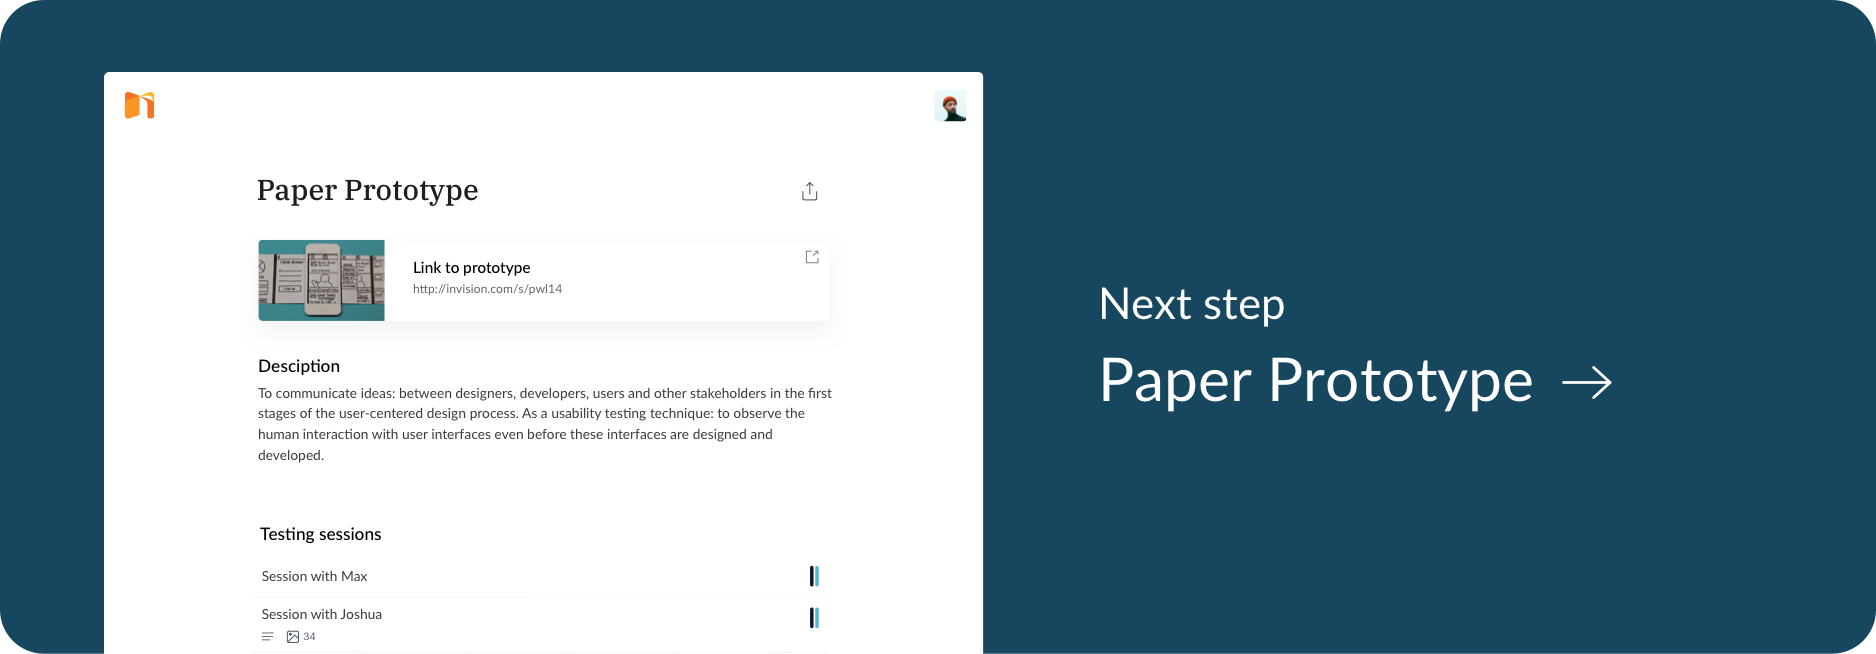 Go to the next Article - Paper Prototype